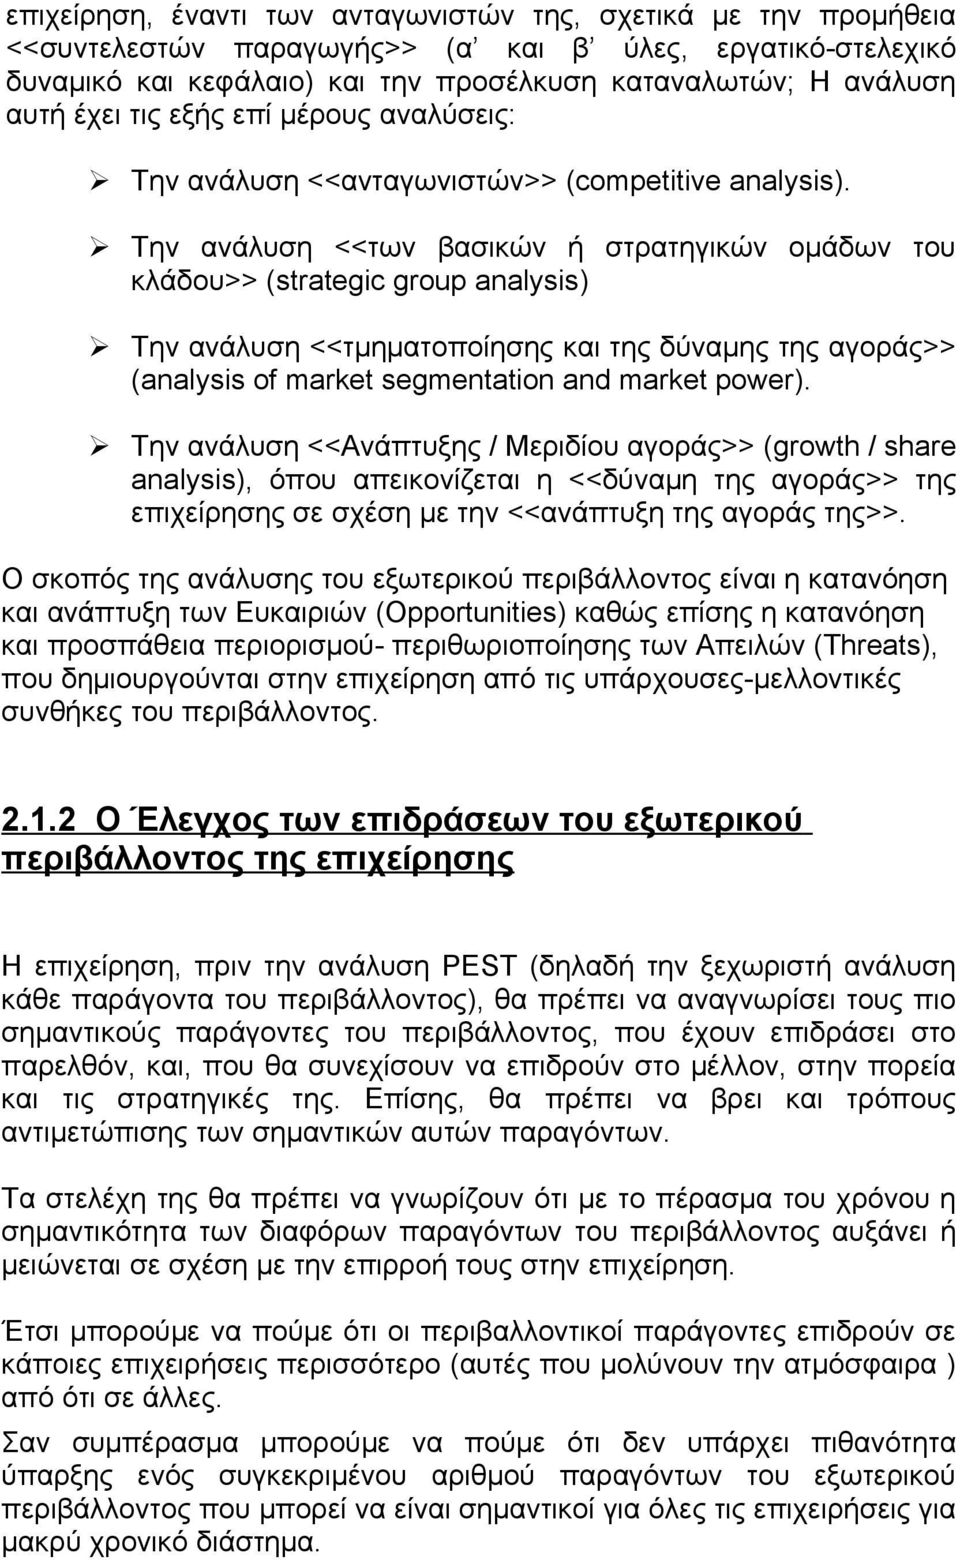 Την ανάλυση <<των βασικών ή στρατηγικών ομάδων του κλάδου>> (strategic group analysis) Την ανάλυση <<τμηματοποίησης και της δύναμης της αγοράς>> (analysis of market segmentation and market power).